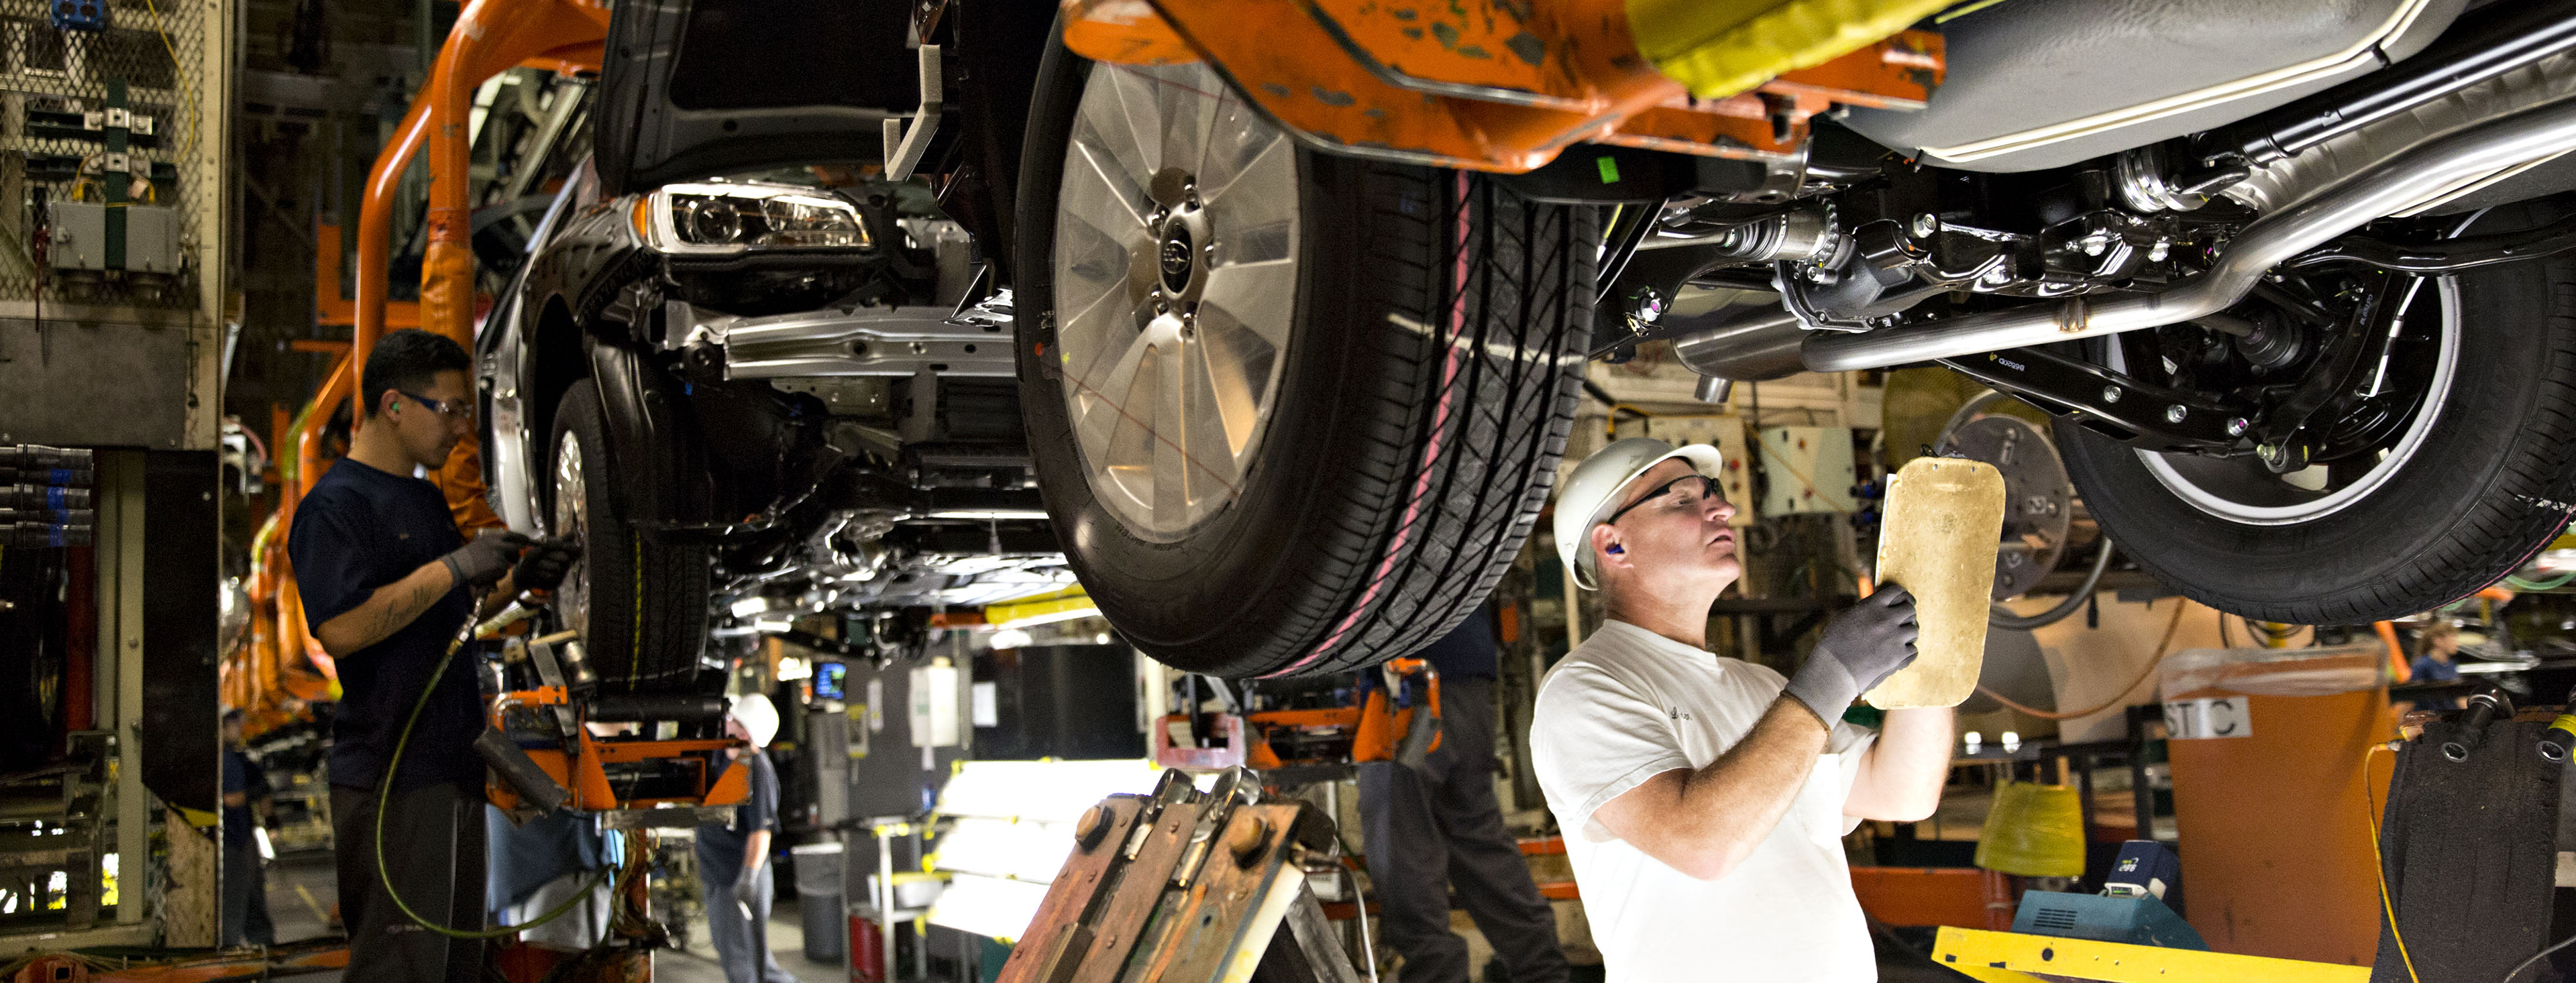 Operations Inside A Subaru Production Facility Ahead Of Factory Order Figures